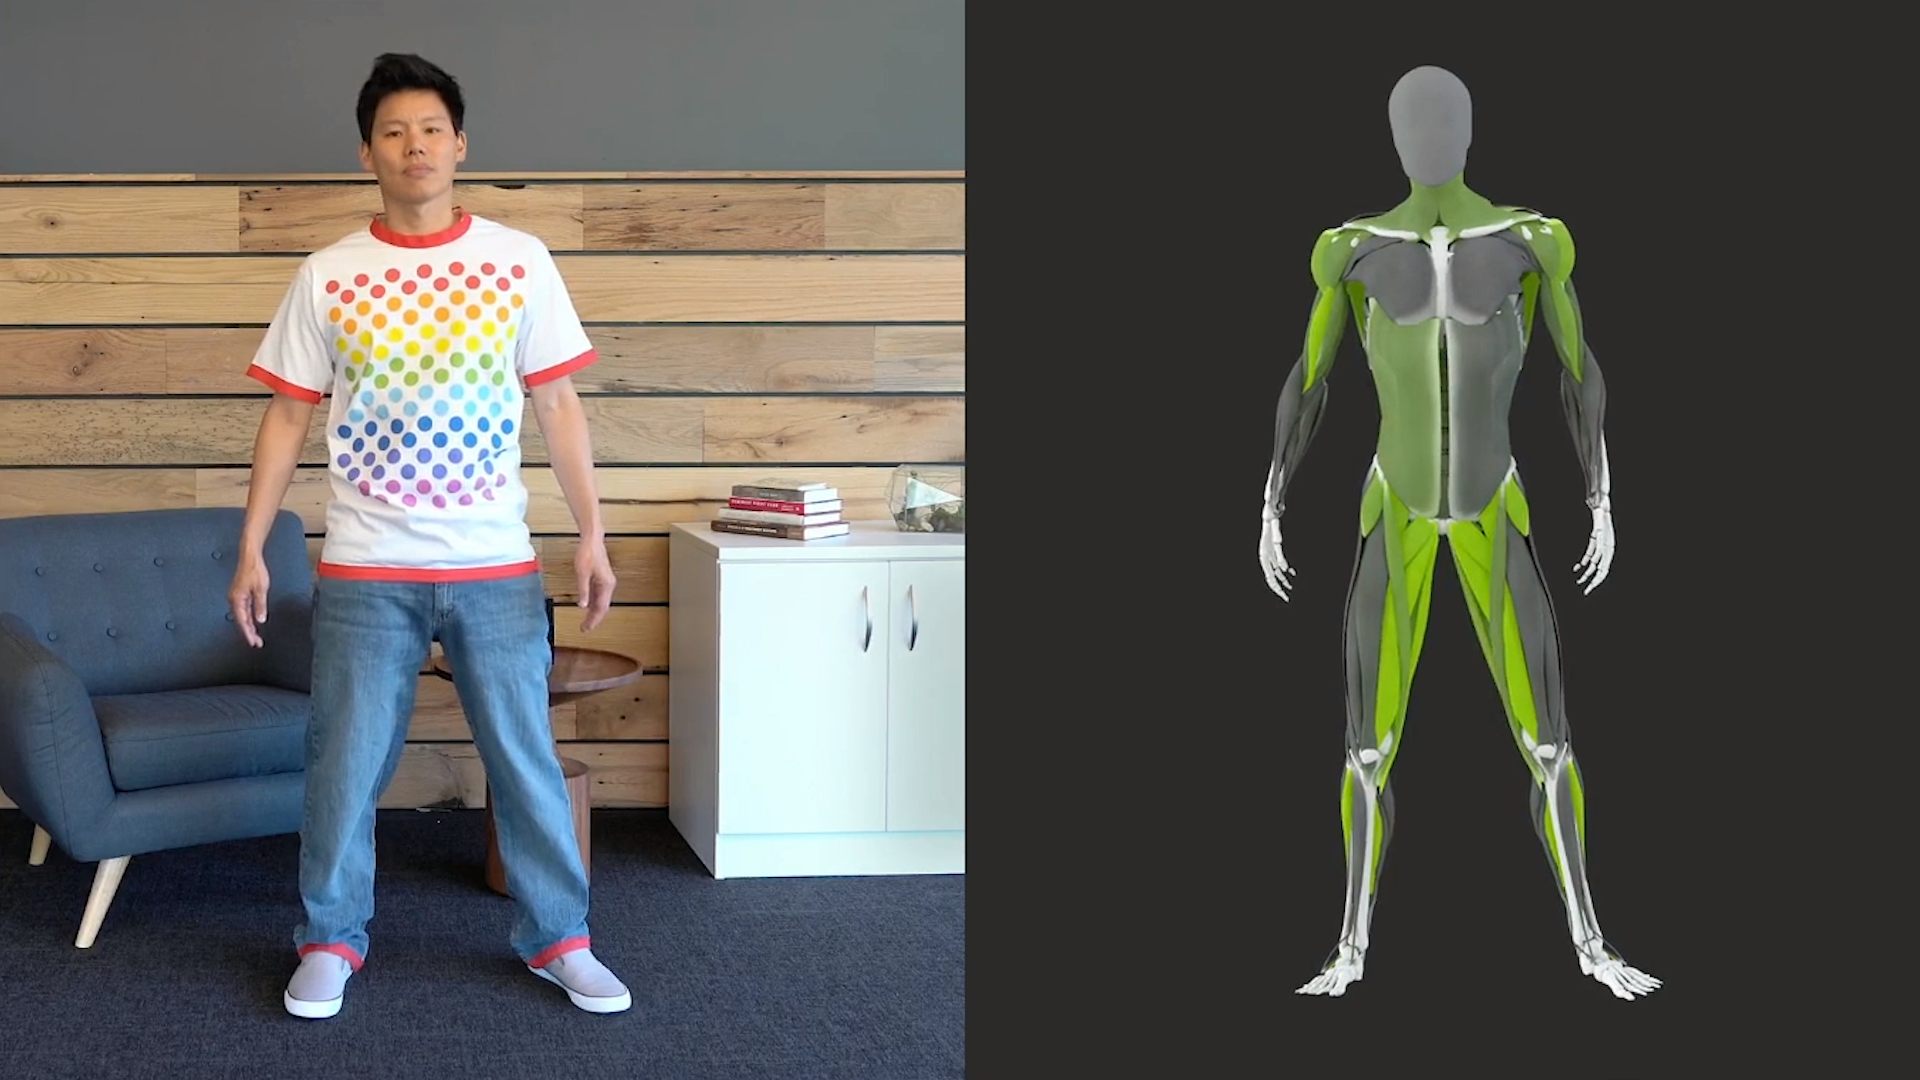 f8 2019 muscular body tracking